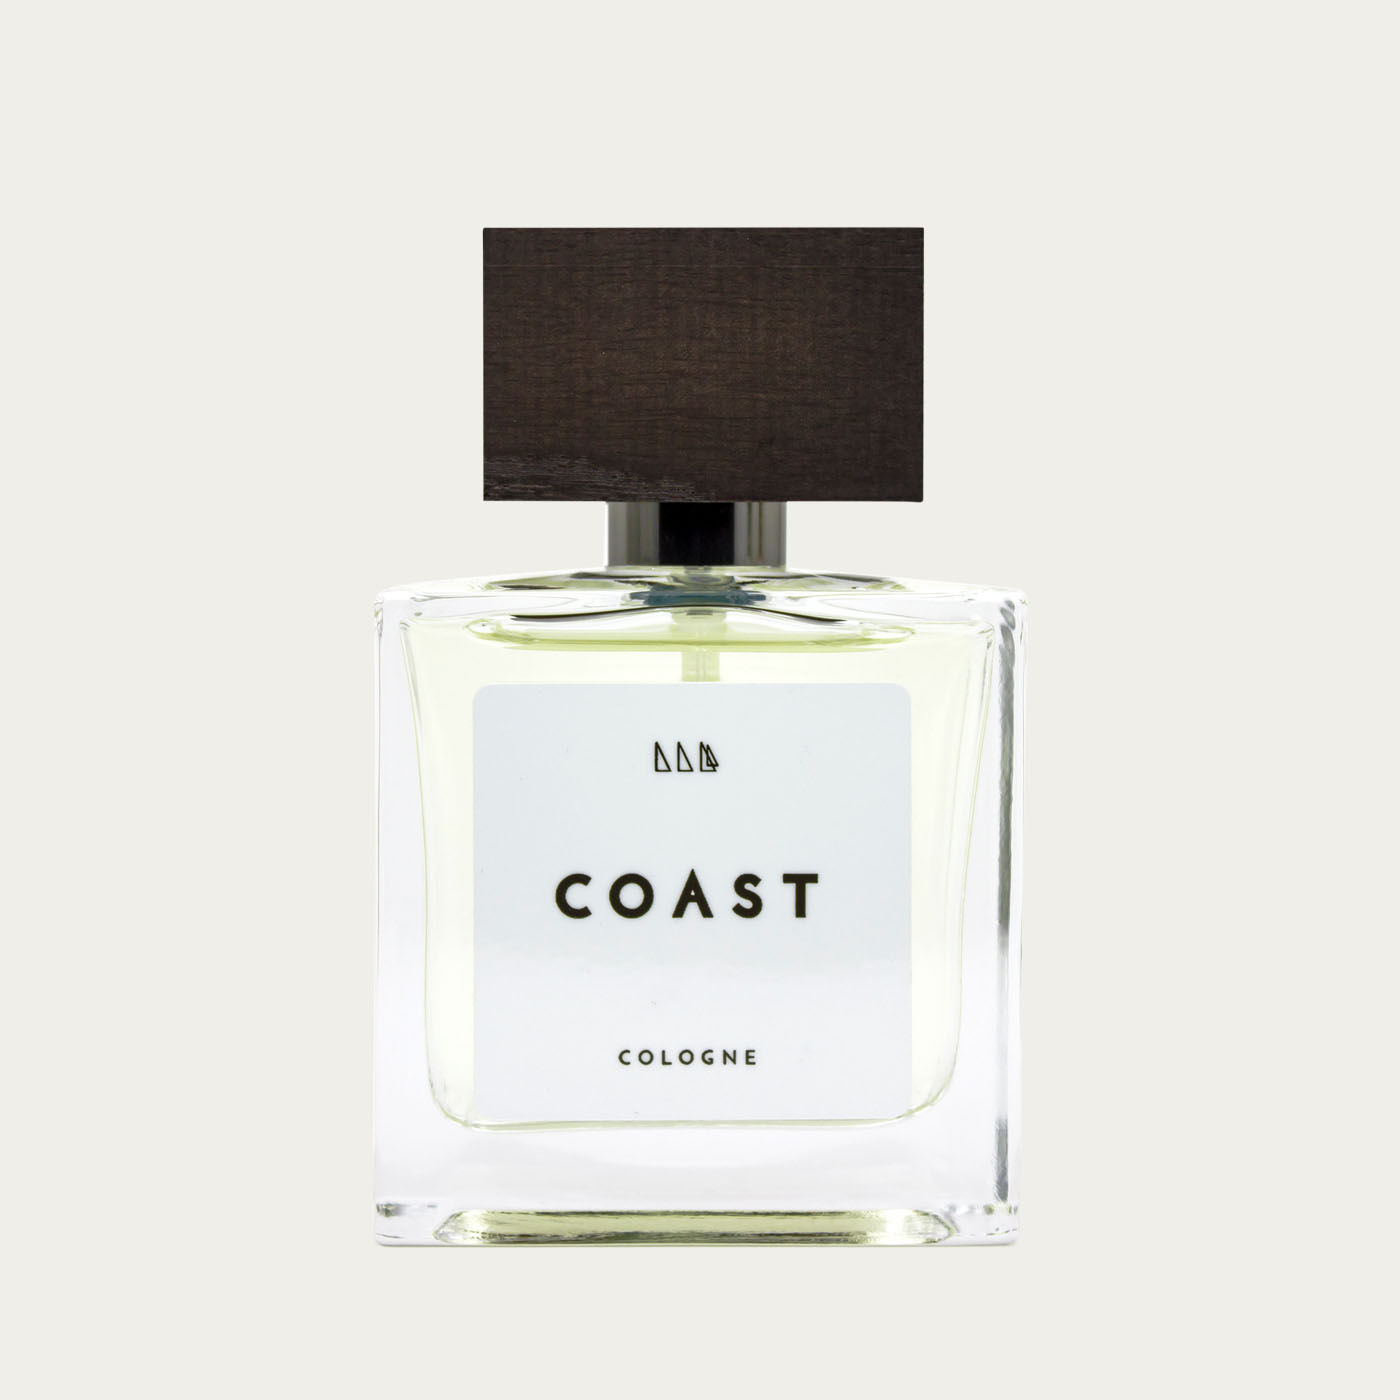 Coast - 50ml Cologne | Bombinate